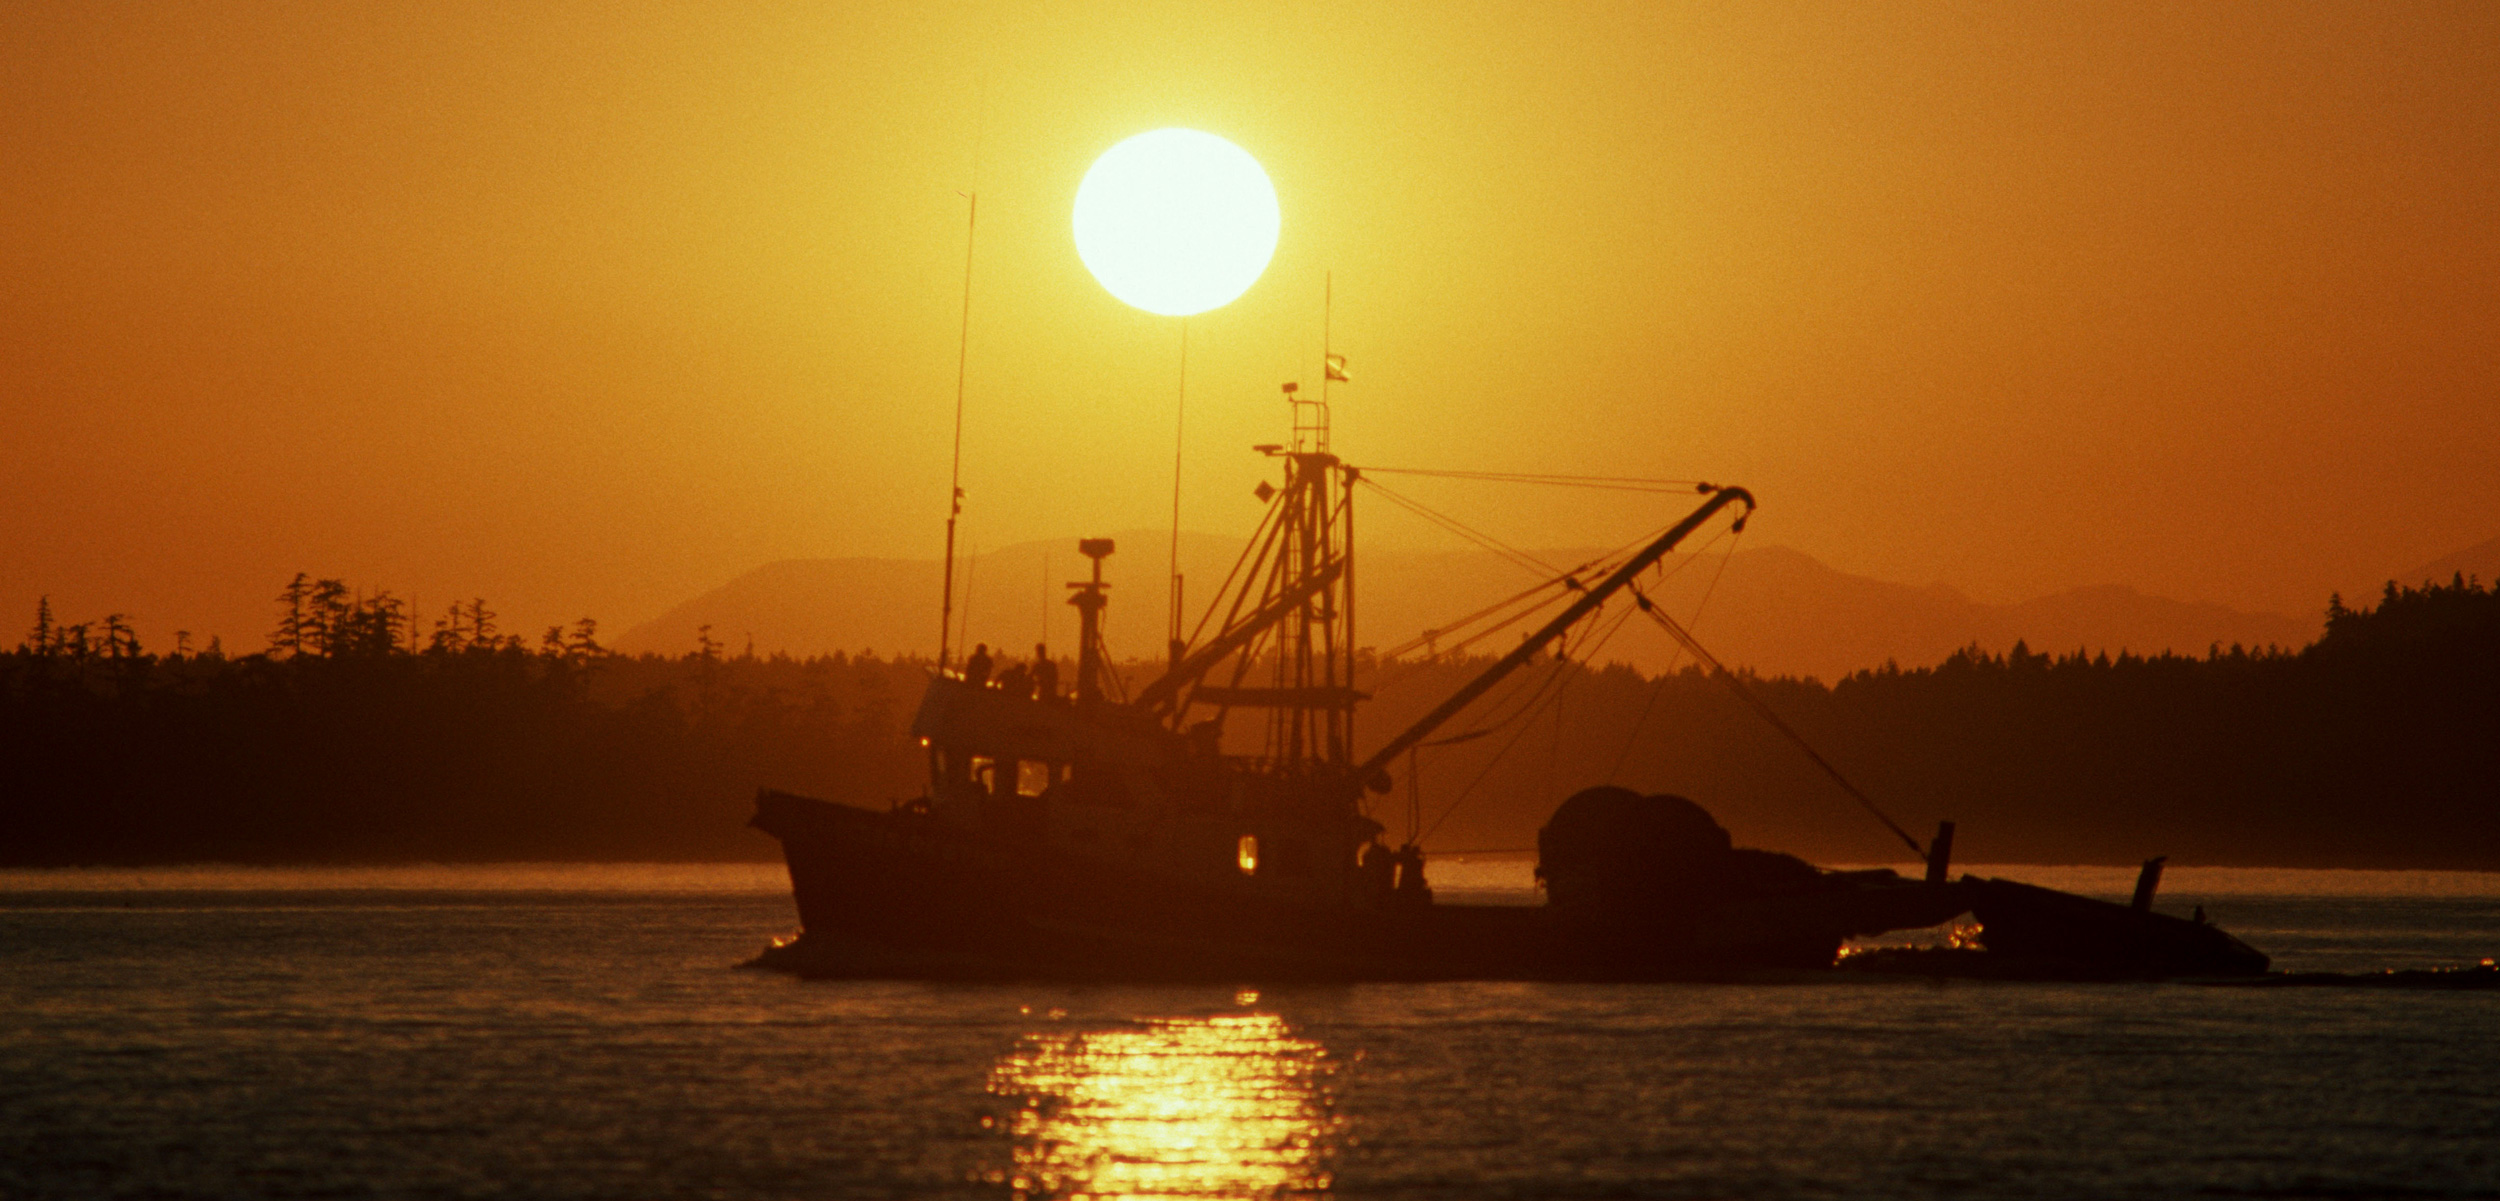 Vancouver Island commercial fishboat in sunset, British Columbia, Canada